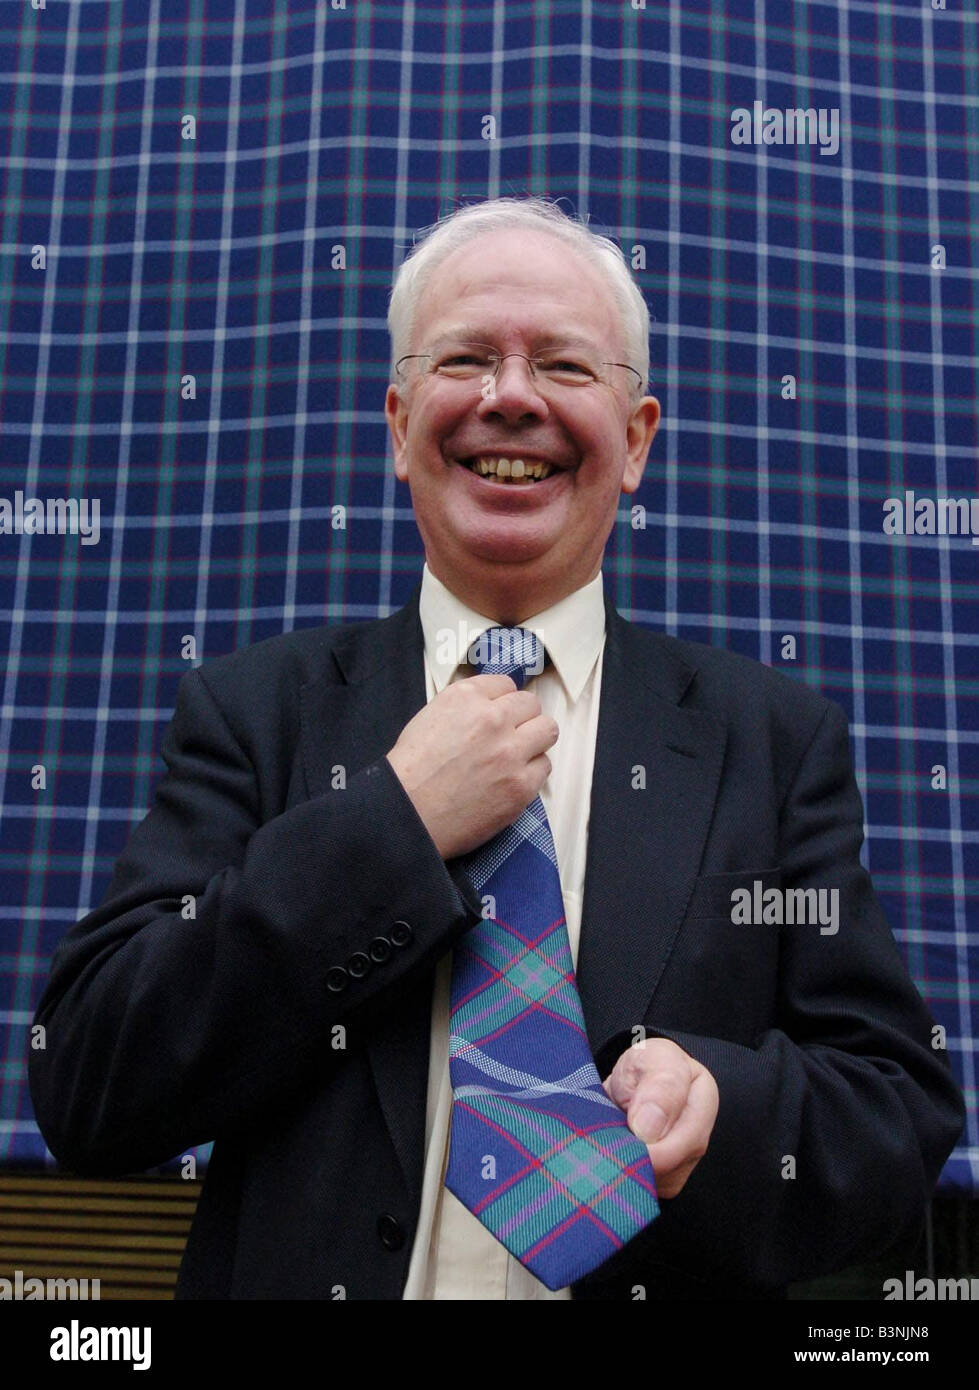 Deputy first minister Jim Wallace unveils G8 tartan in March 2005 - Stock Image